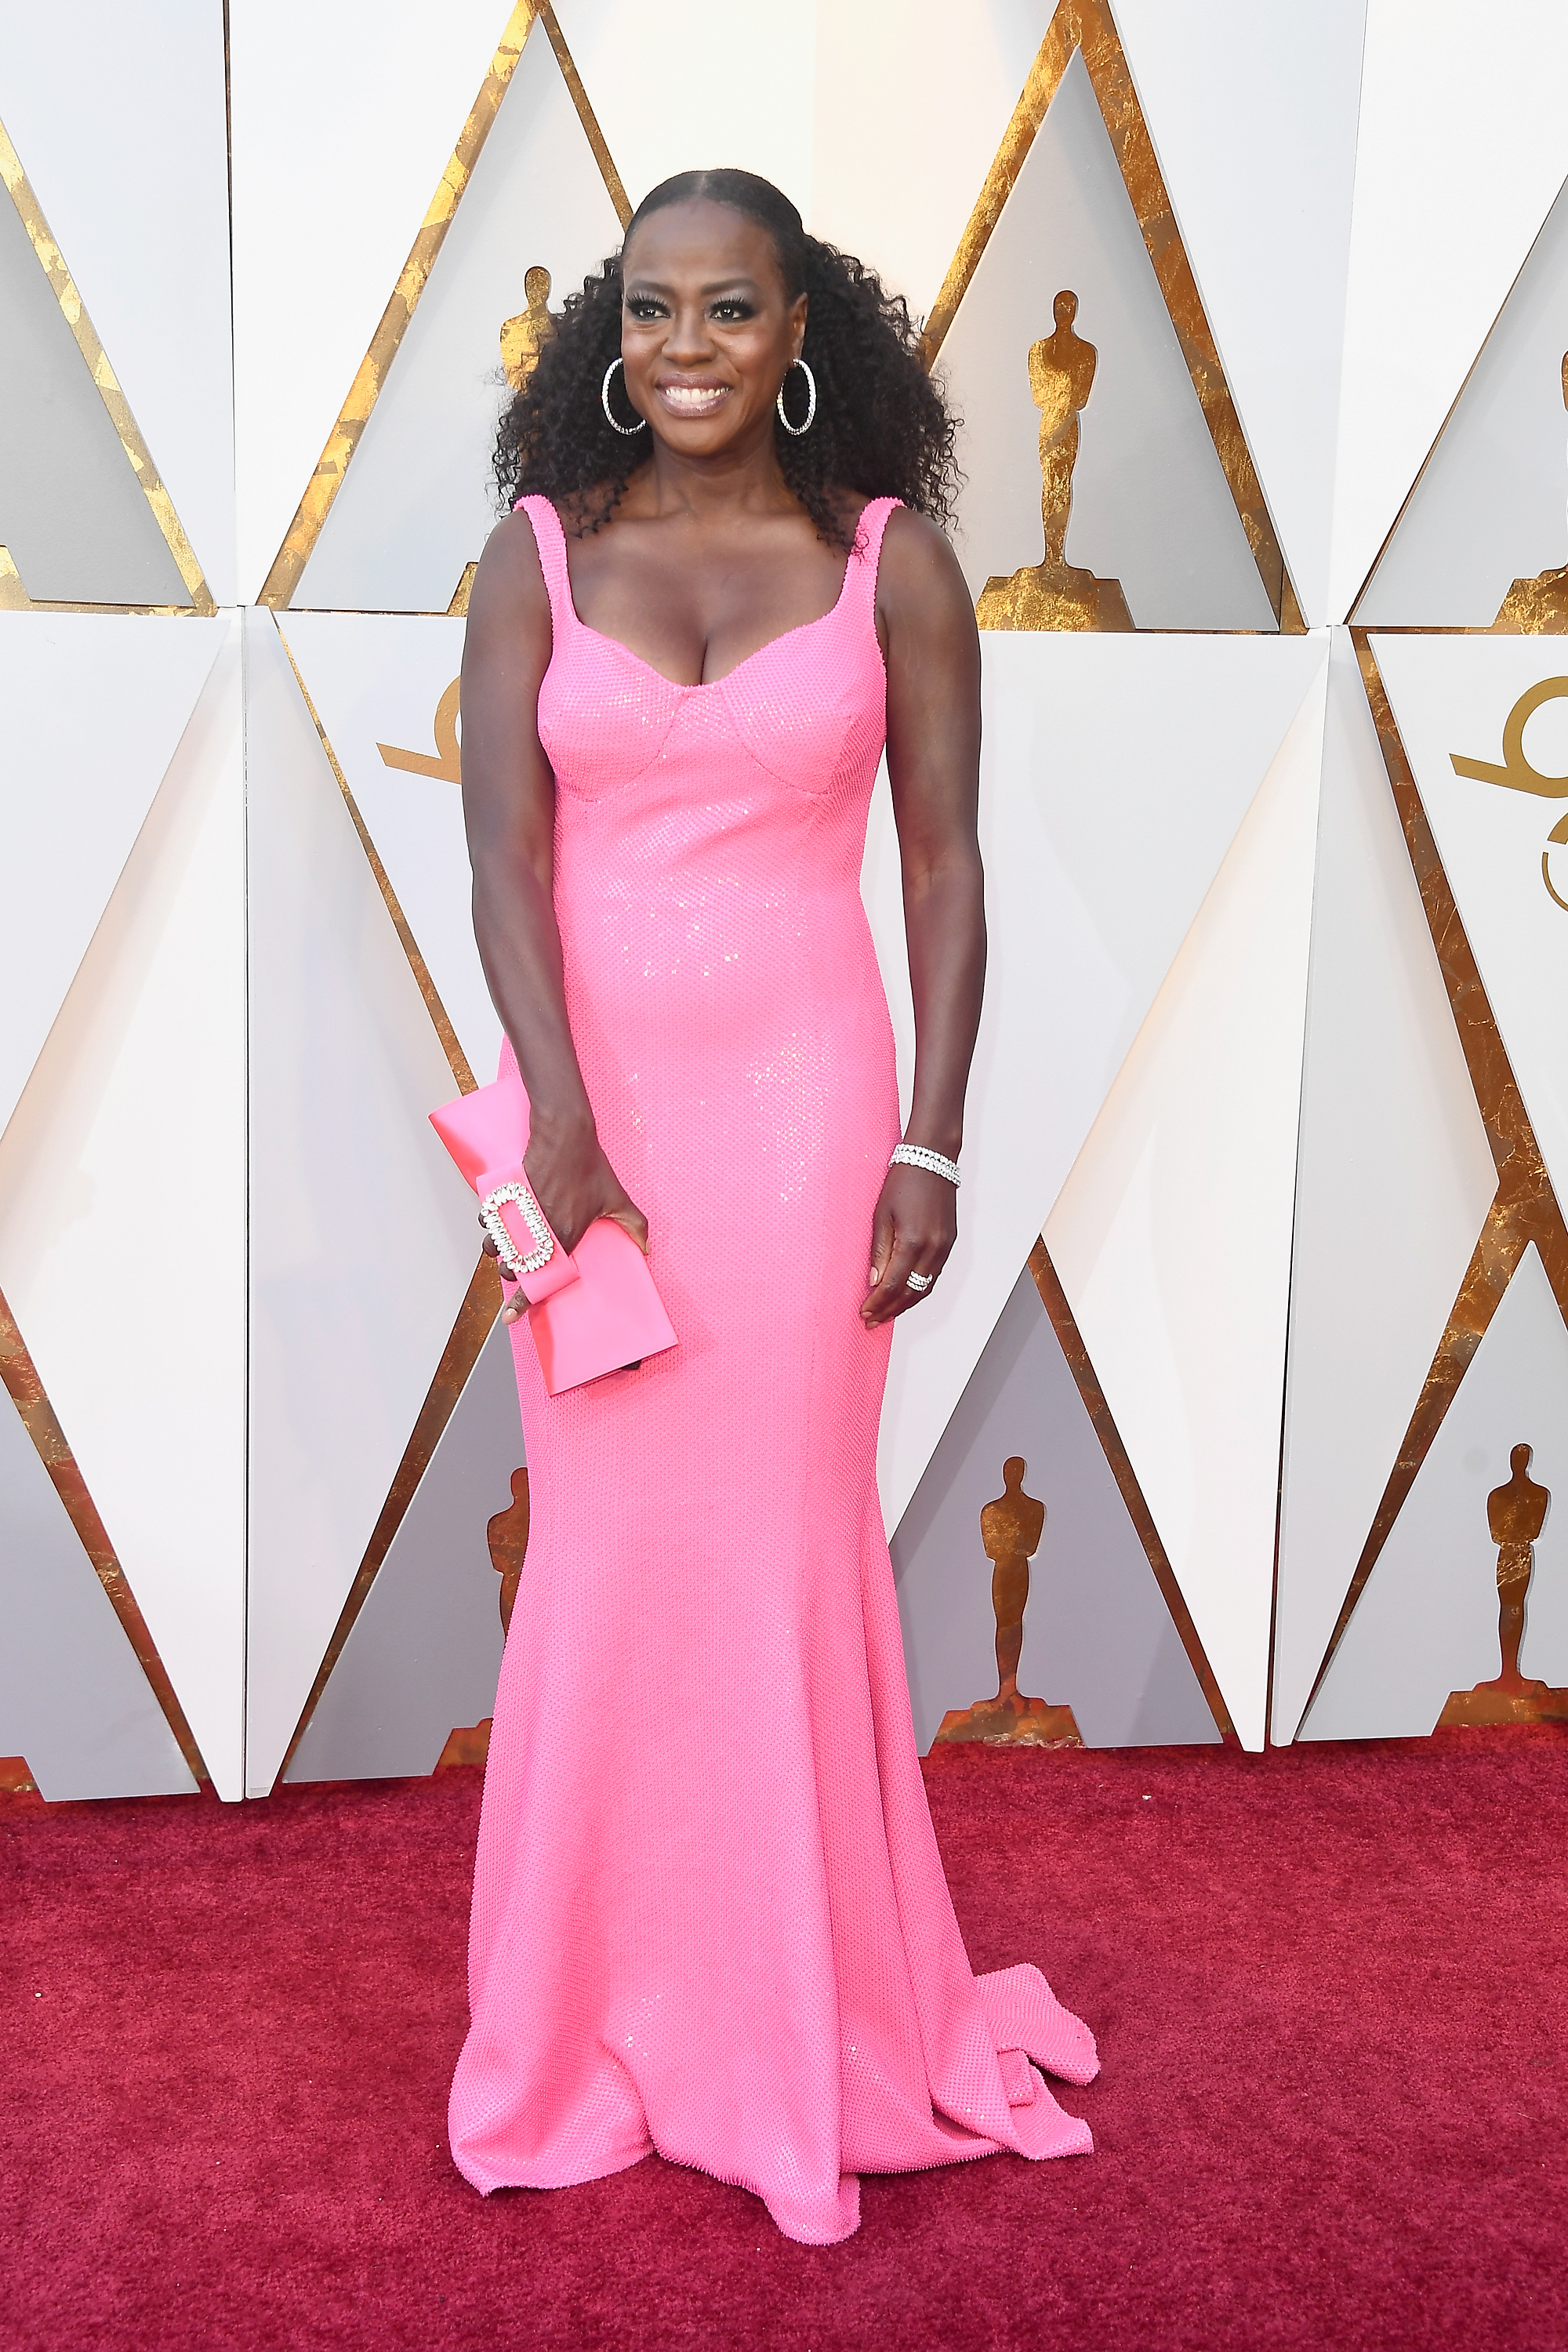 HOLLYWOOD, CA - MARCH 04:  Viola Davis attends the 90th Annual Academy Awards at Hollywood & Highland Center on March 4, 2018 in Hollywood, California.  (Photo by Frazer Harrison/Getty Images)